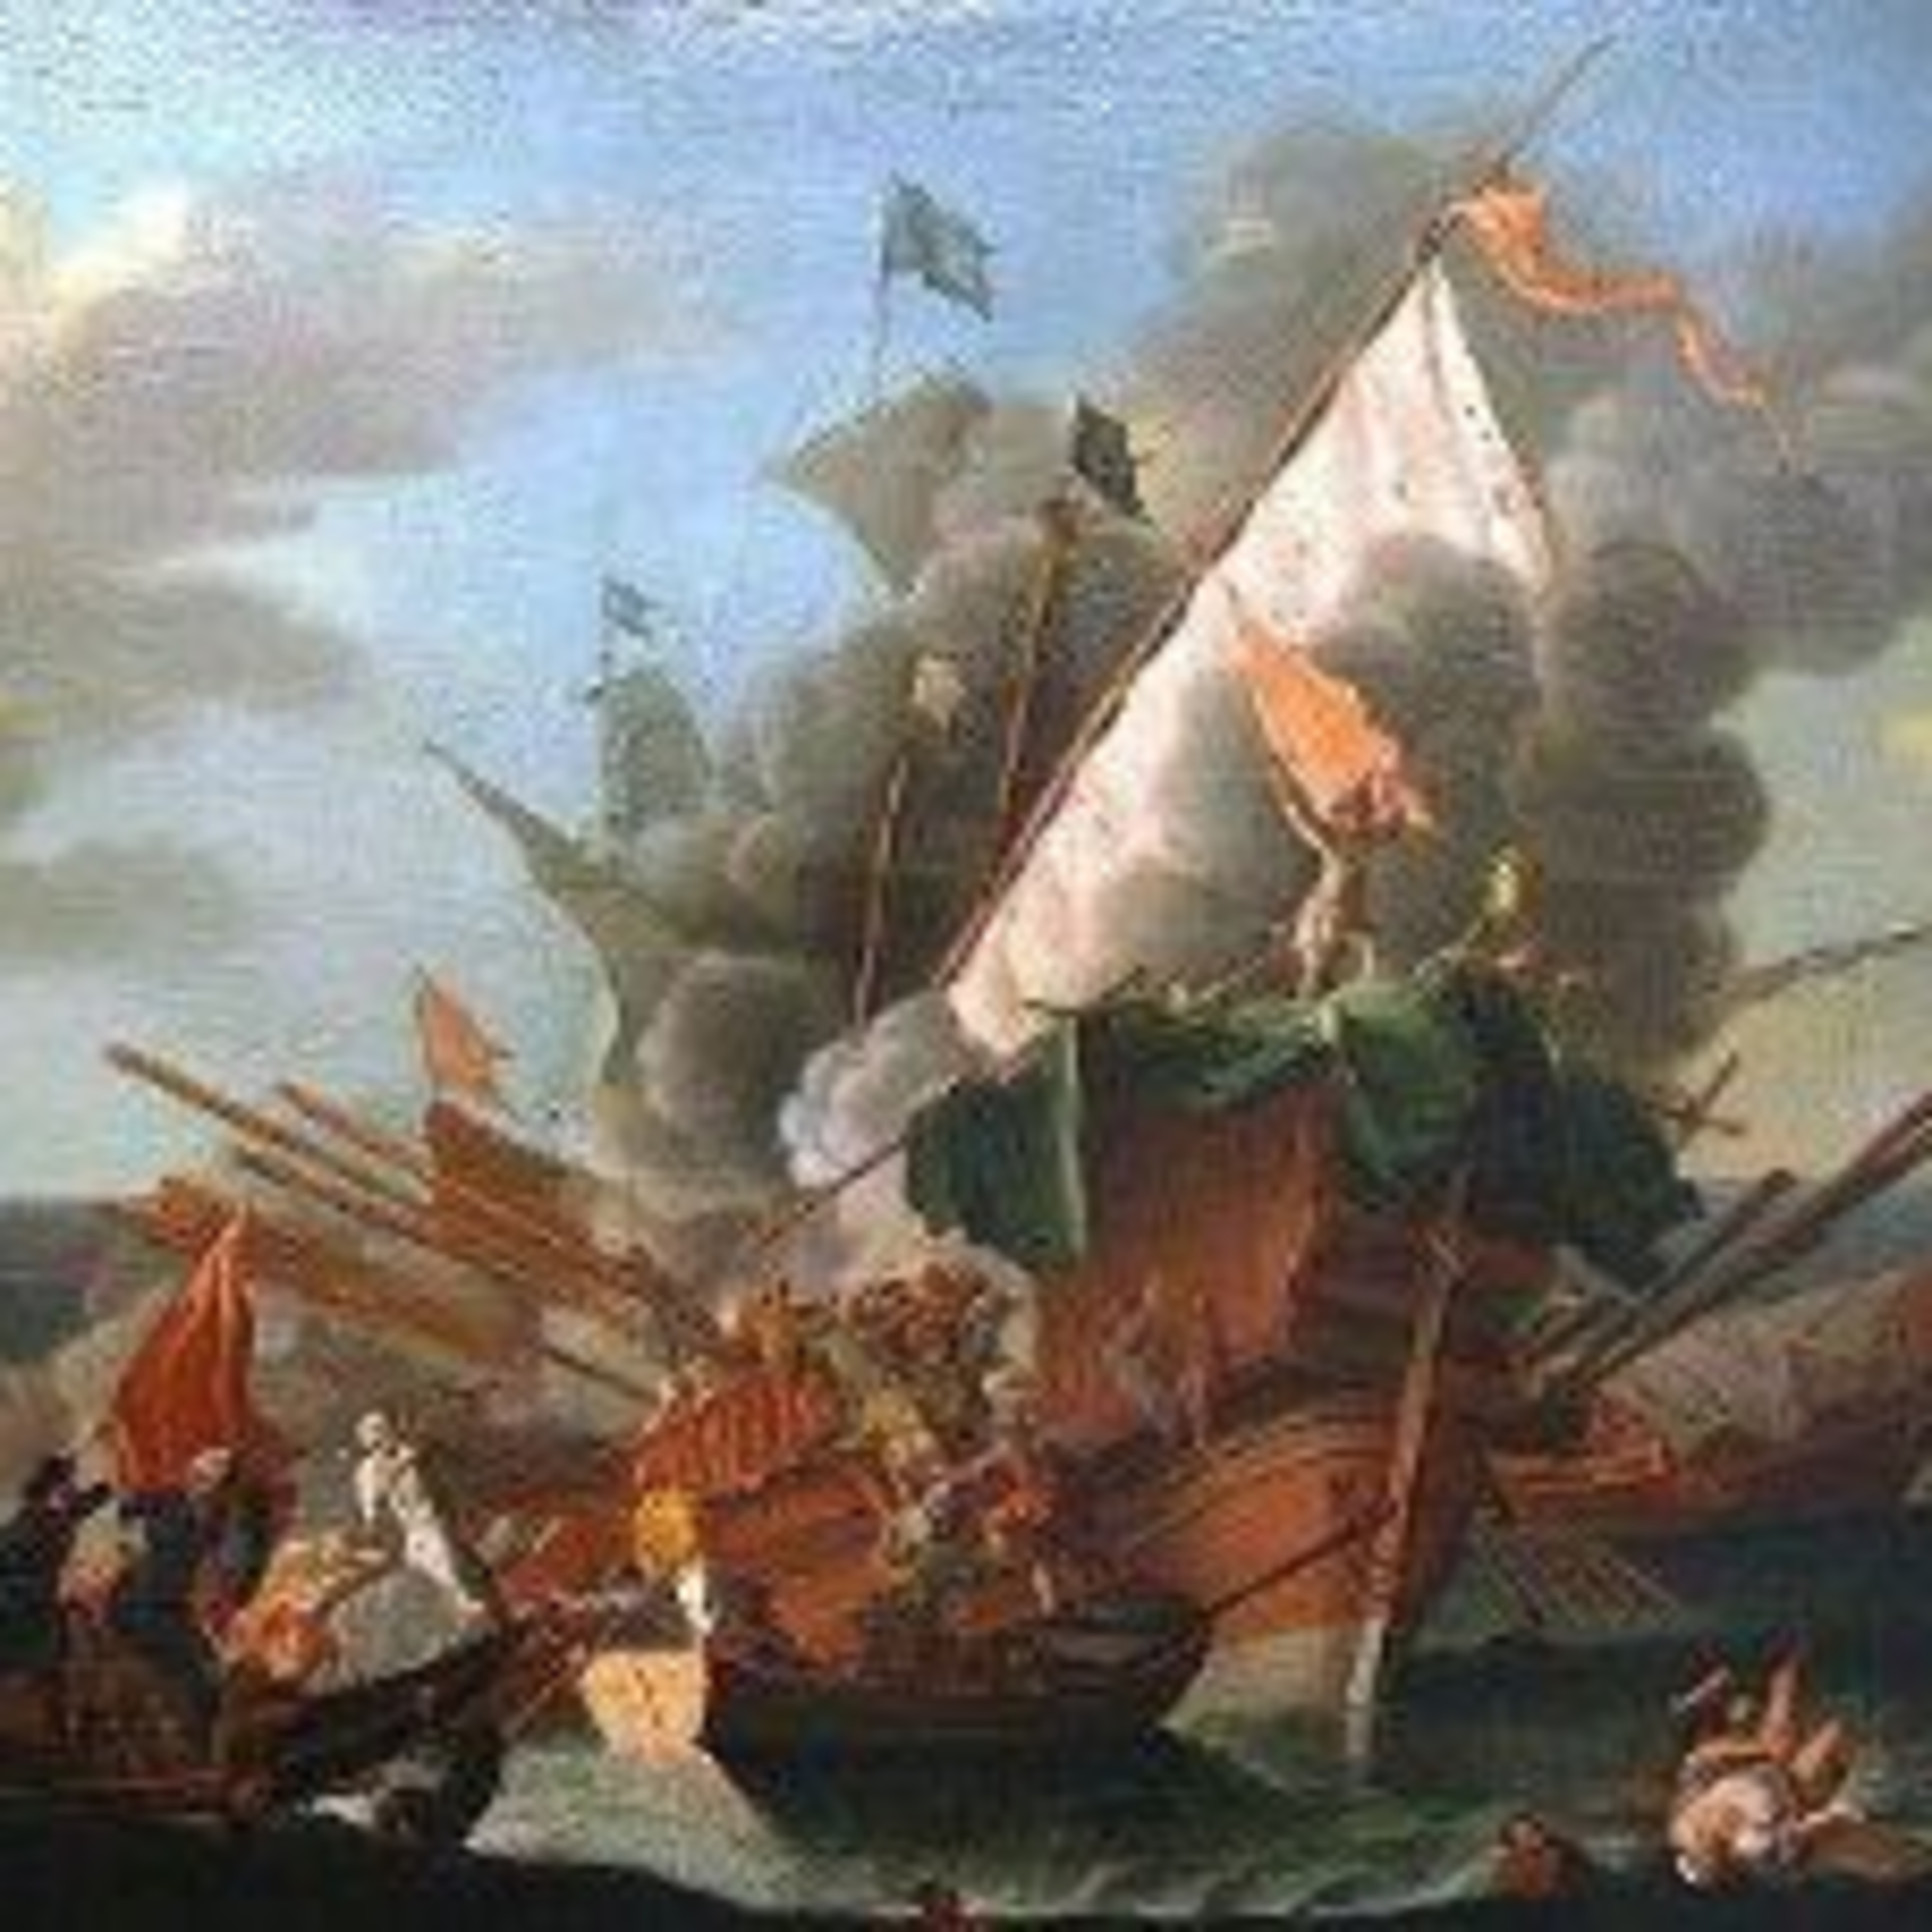 Lepanto - Poem by G.K. Chesterton - Celebrating Victory of the Holy League in the Battle of Lepanto in 1571